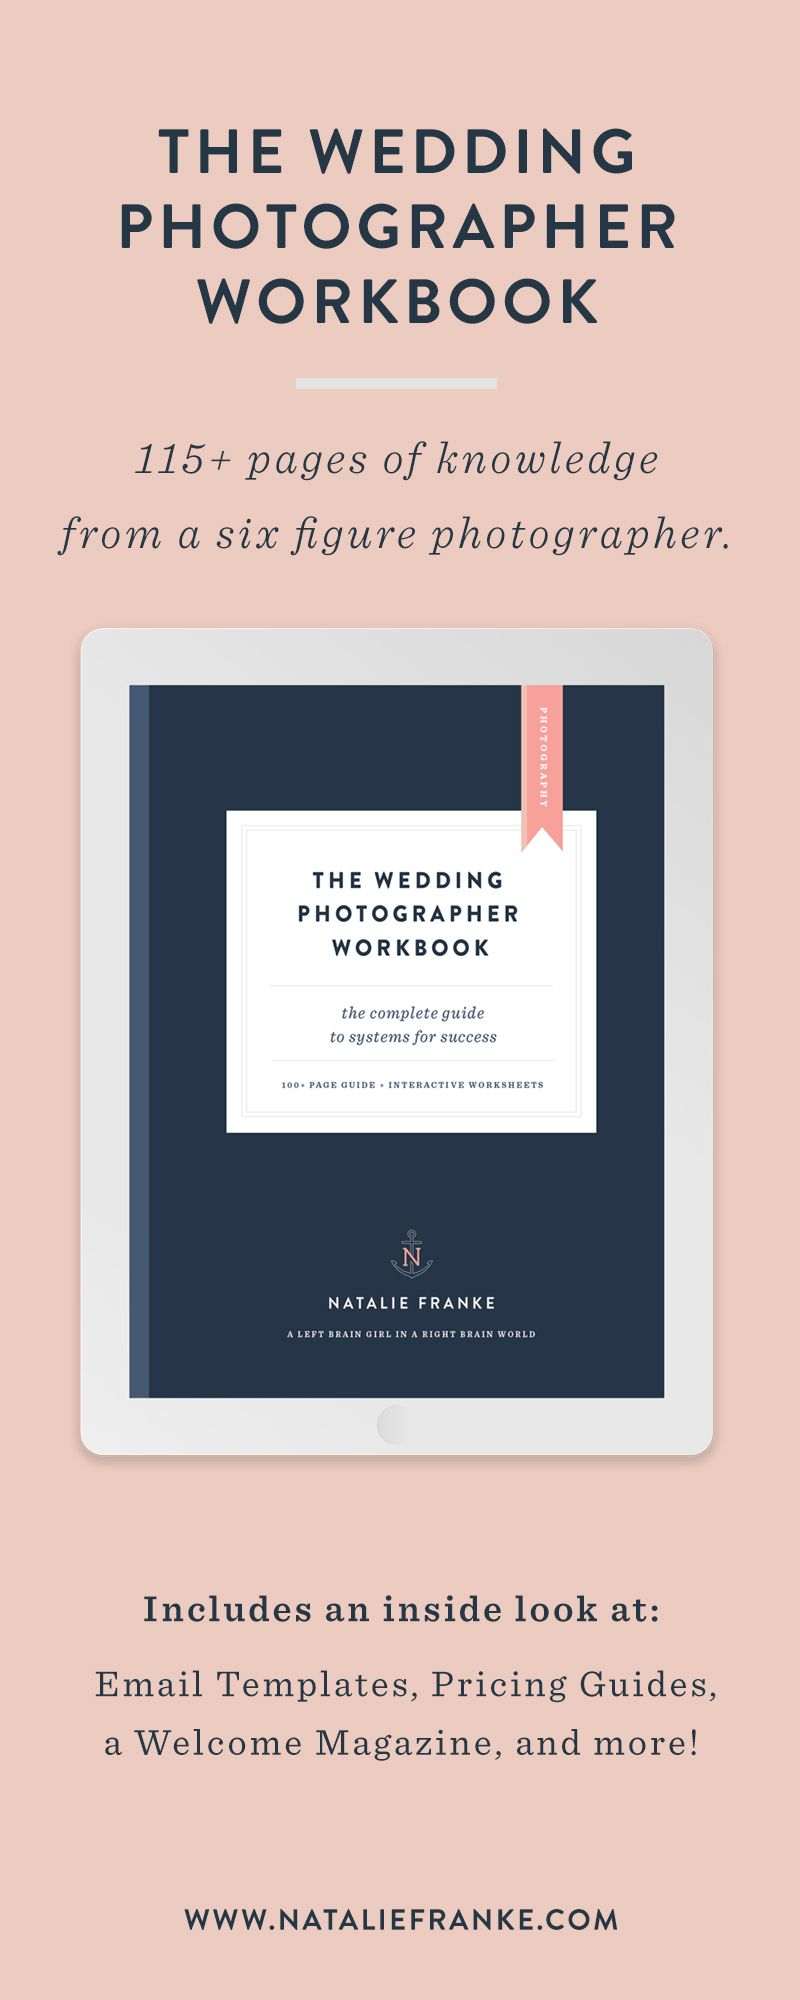 Wedding Photographer S Email Templates Pricing Guides And Client Welcome Ma Wedding Photography Pricing Fun Wedding Photography Wedding Photography Checklist